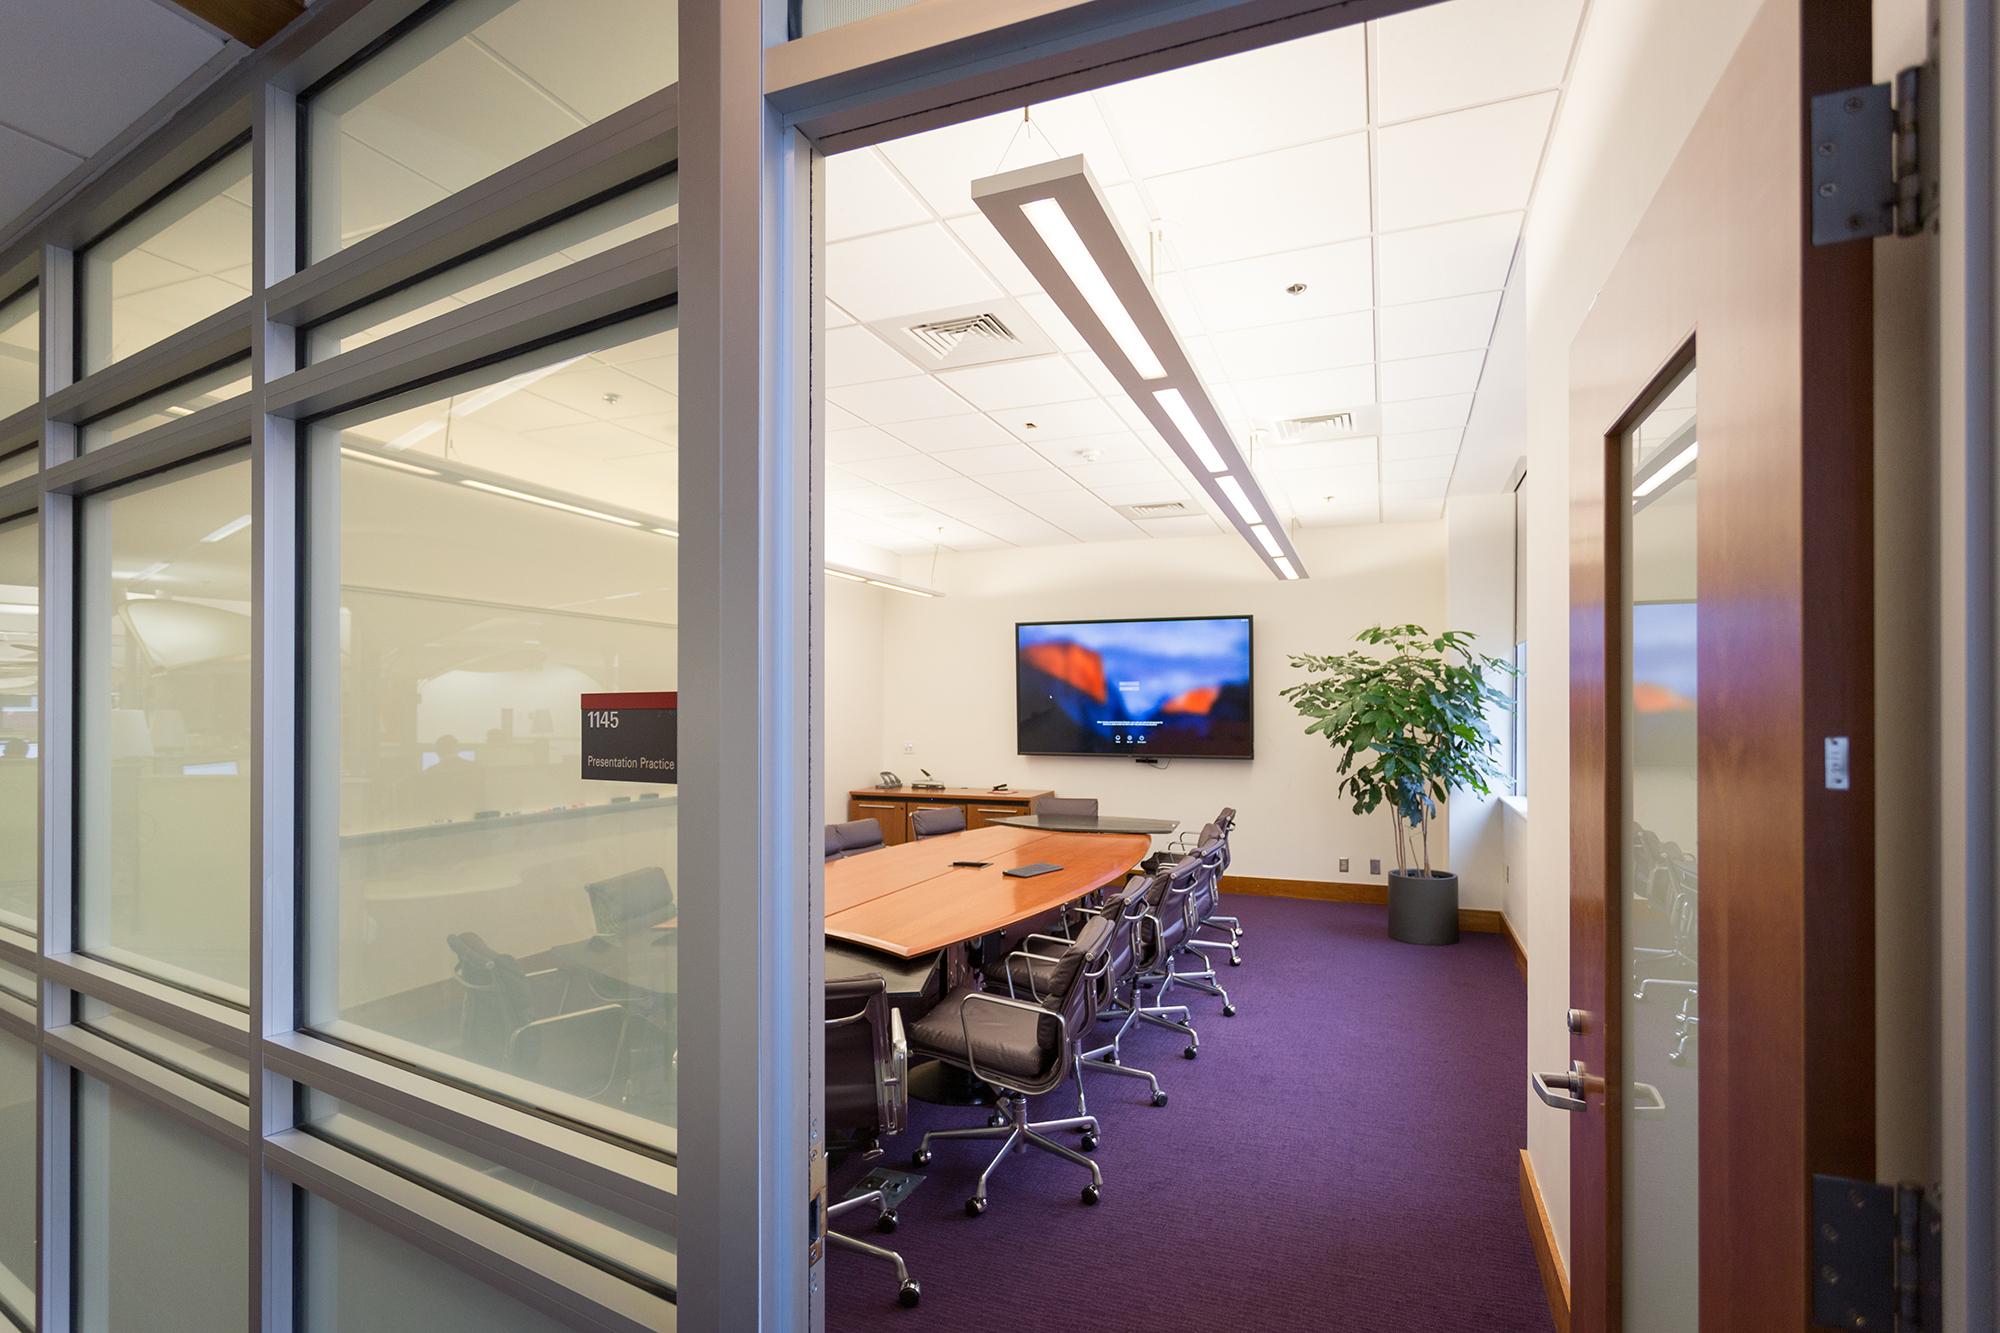 A presentation practice room at DH Hill with a wall mounted screen, table, and 10 chairs